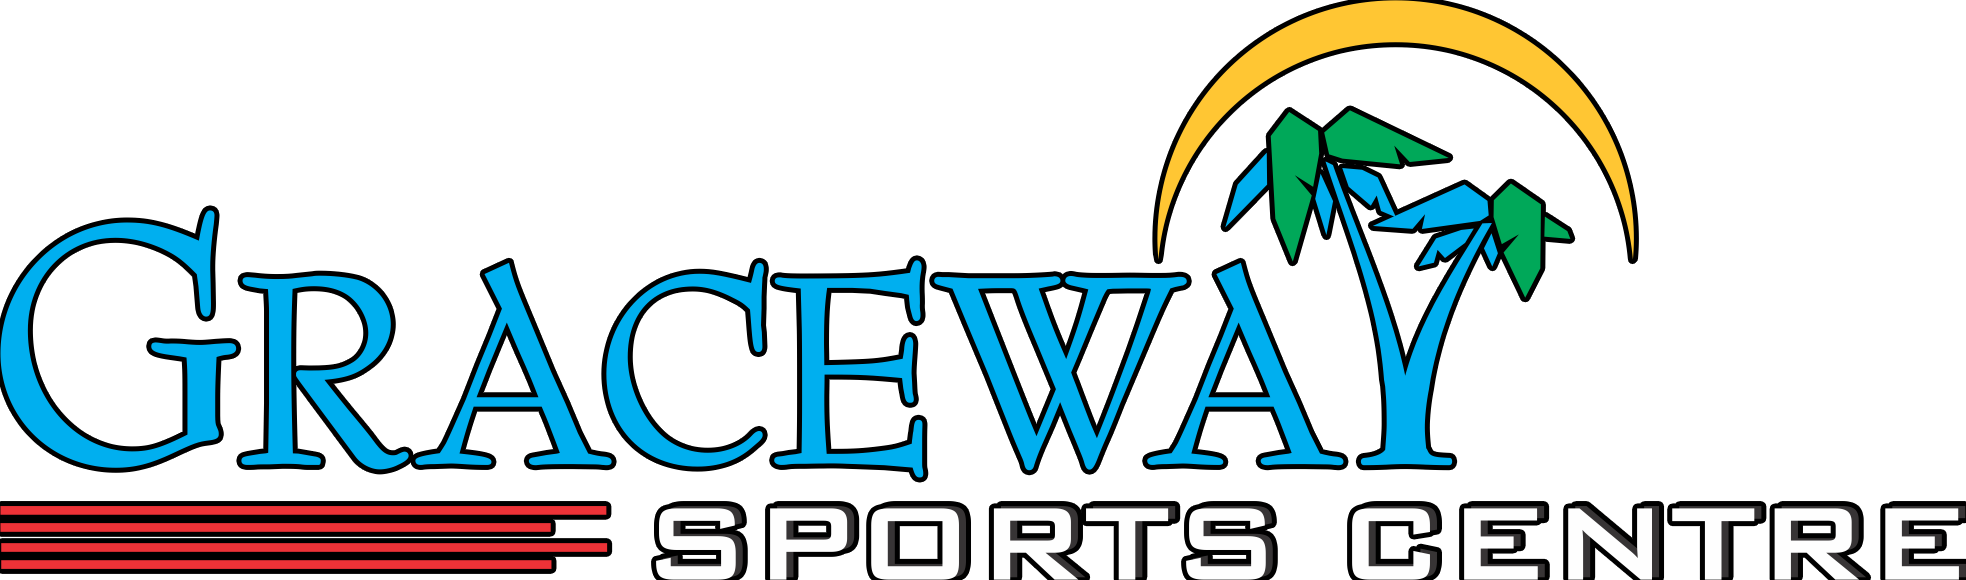 Workout Plans - Graceway Sports Center